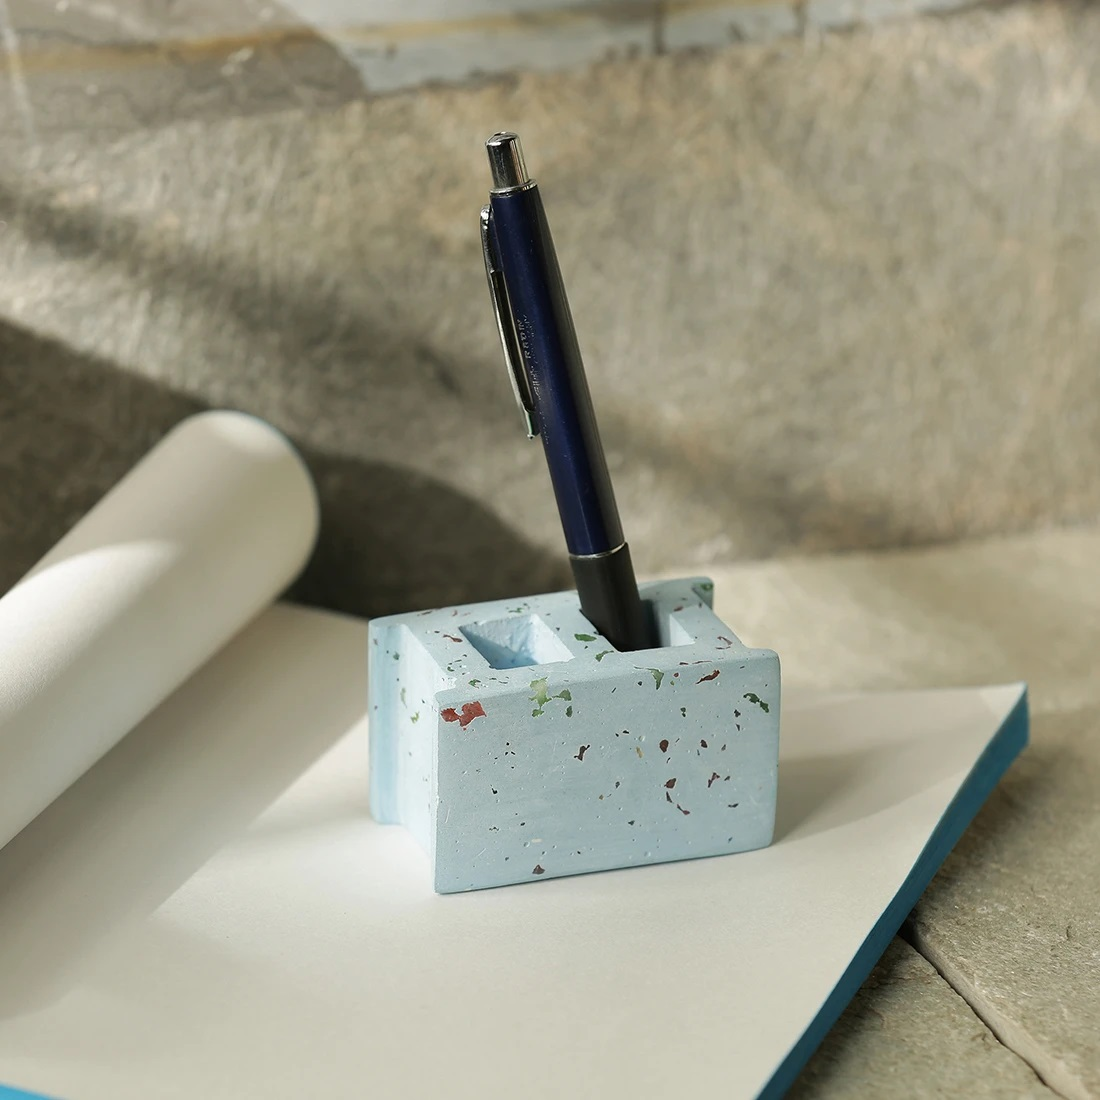 Moorni The Rectangular Essentials Handcrafted Terrazzo Pen Stand & Paperweight In Concrete